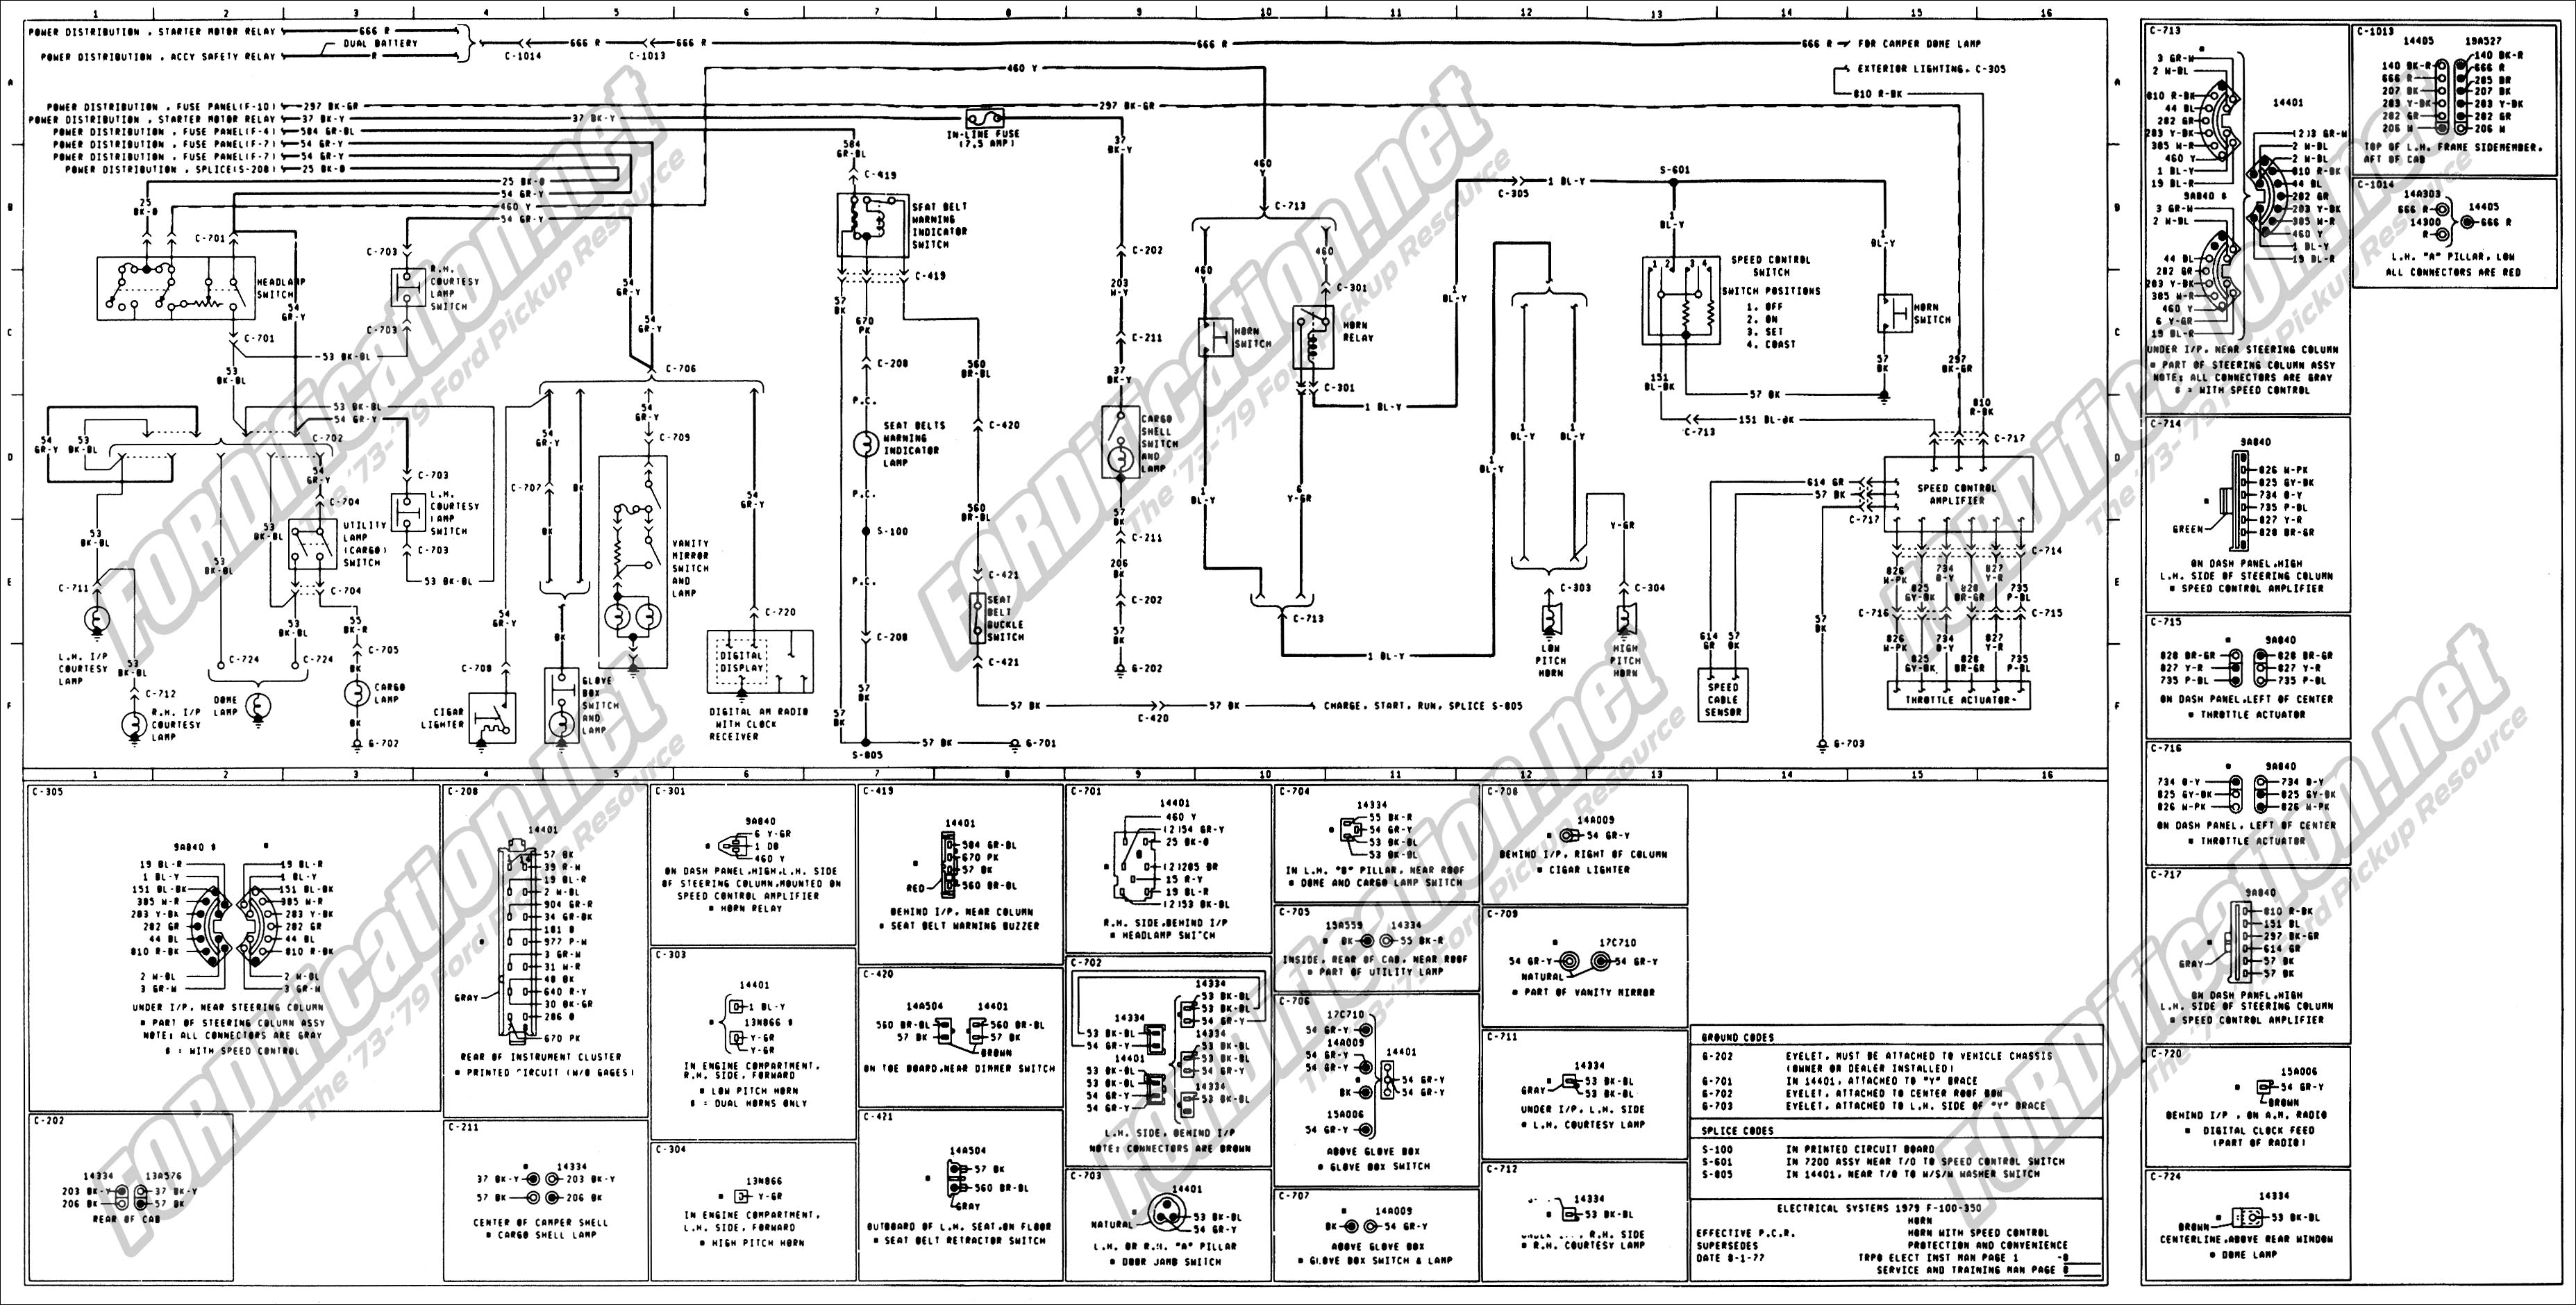 wiring diagram for 79 ford truck simple wiring diagram rh david huggett co  uk